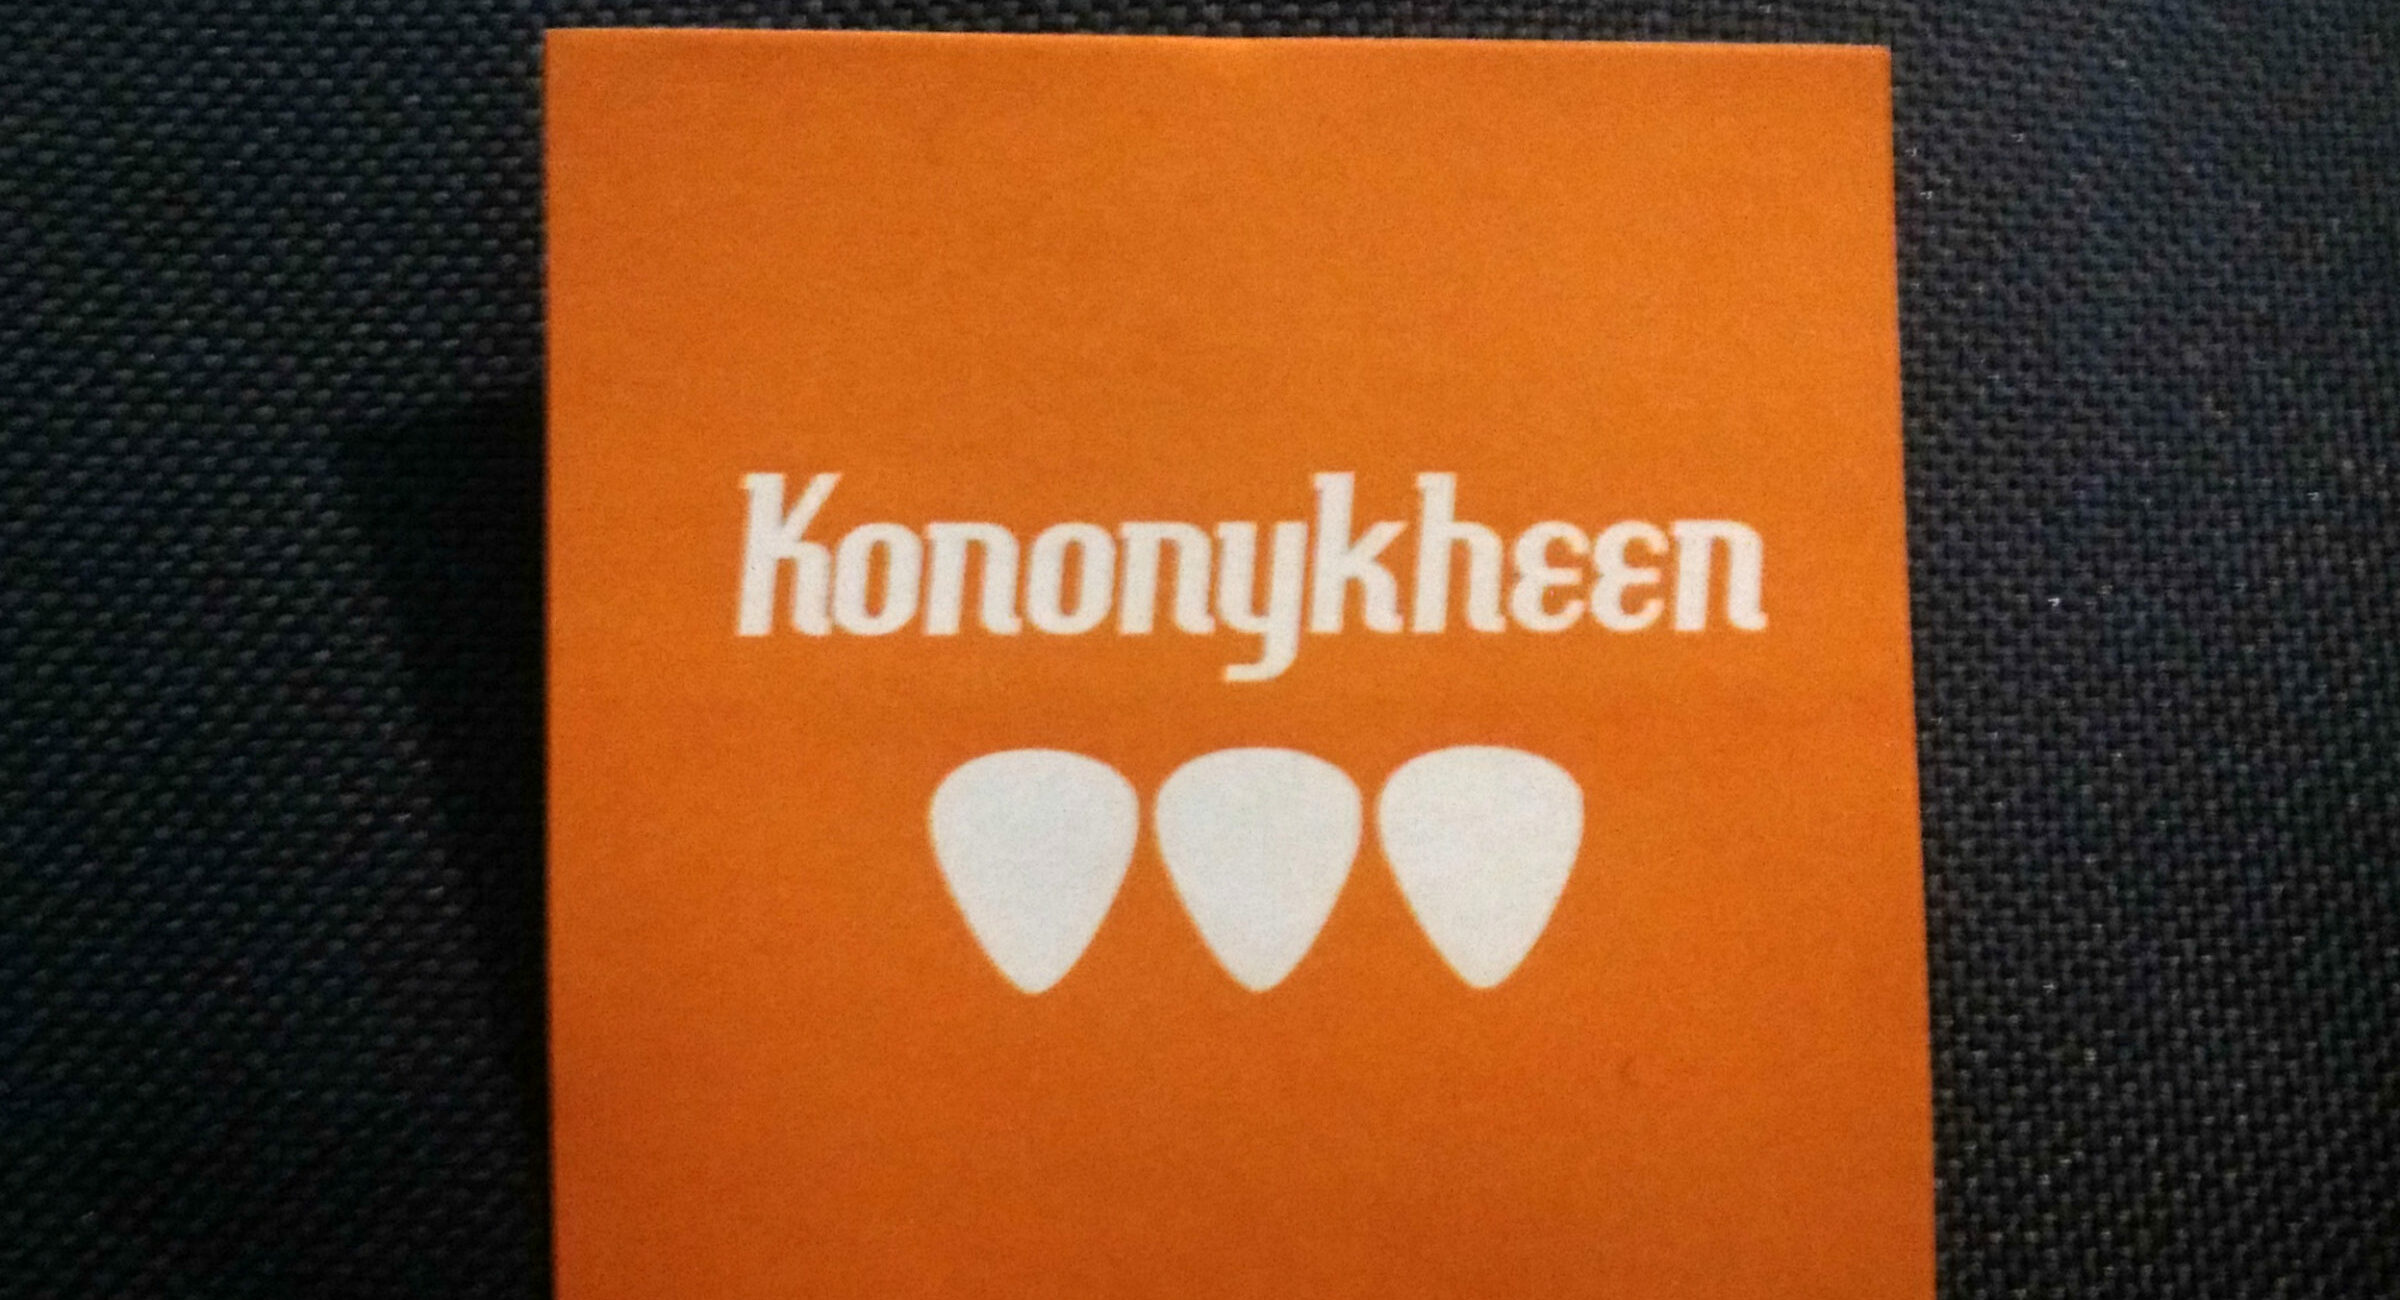 Guitar Company, Kononykheen, Electric Guitars, Skonnie Music